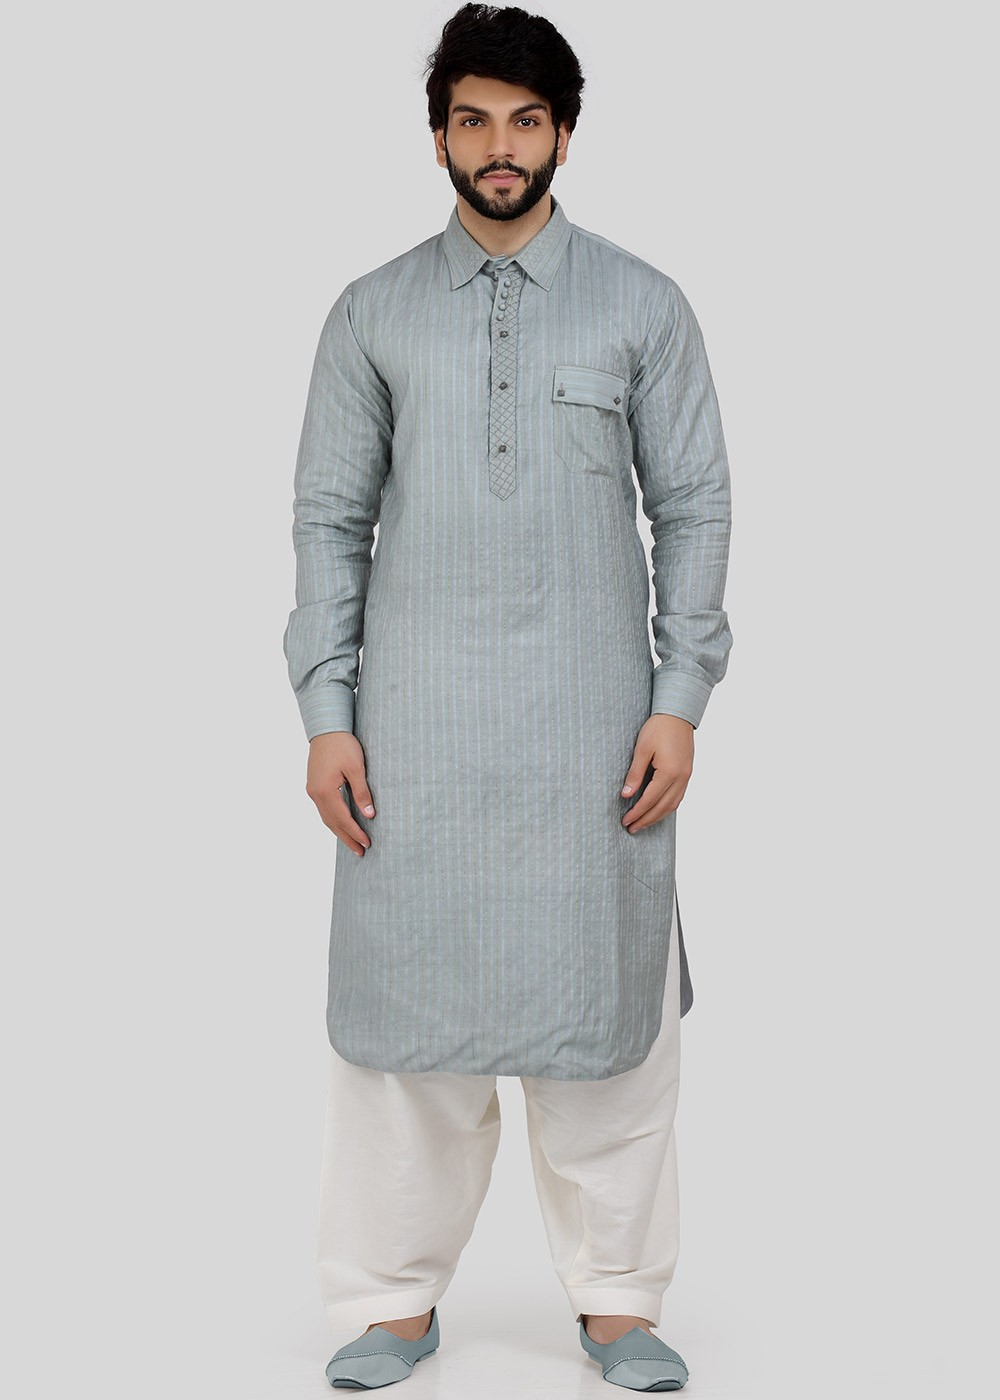 Readymade Grey Linen Pathani Suit For Men